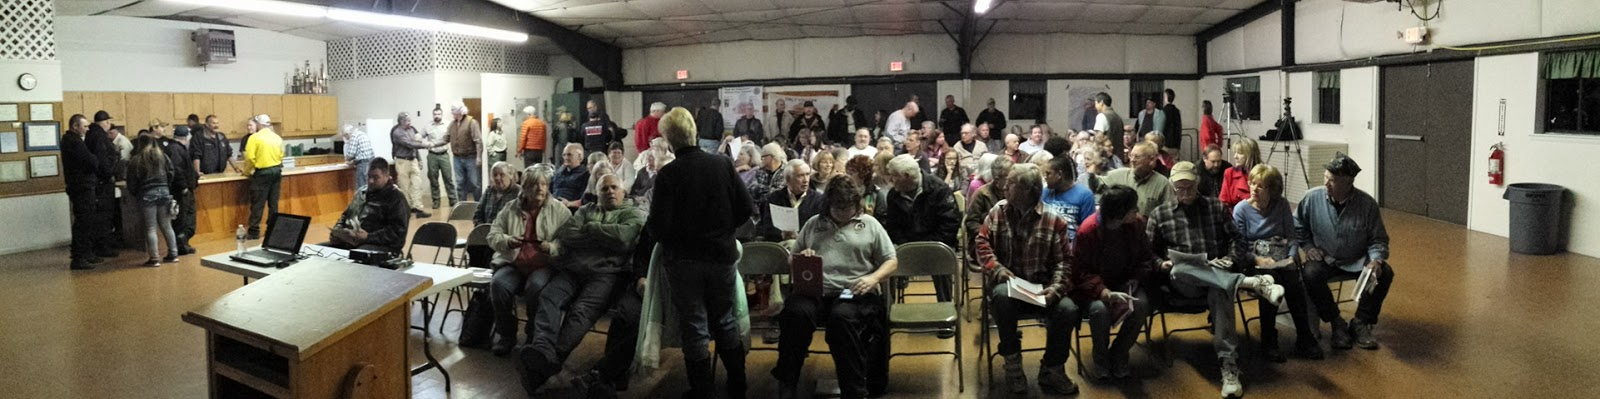 Otto Fire Information Meeting  Panoramic shot of room from front  Photo by Bobby Coggins